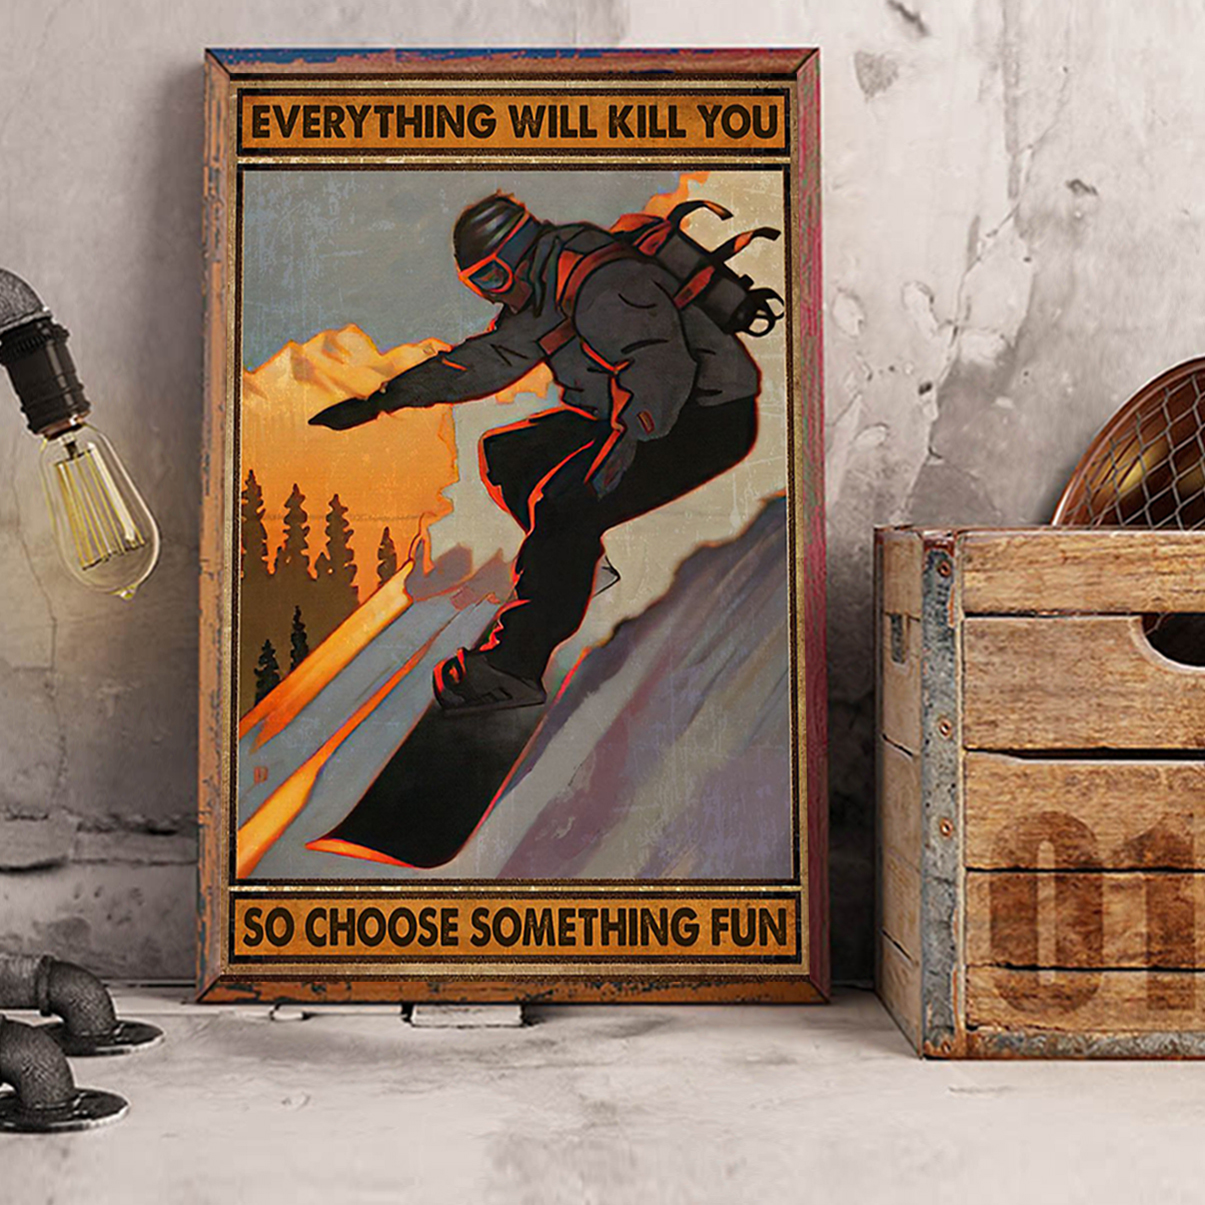 Snowboarding everything will kill you so choose something fun poster A2